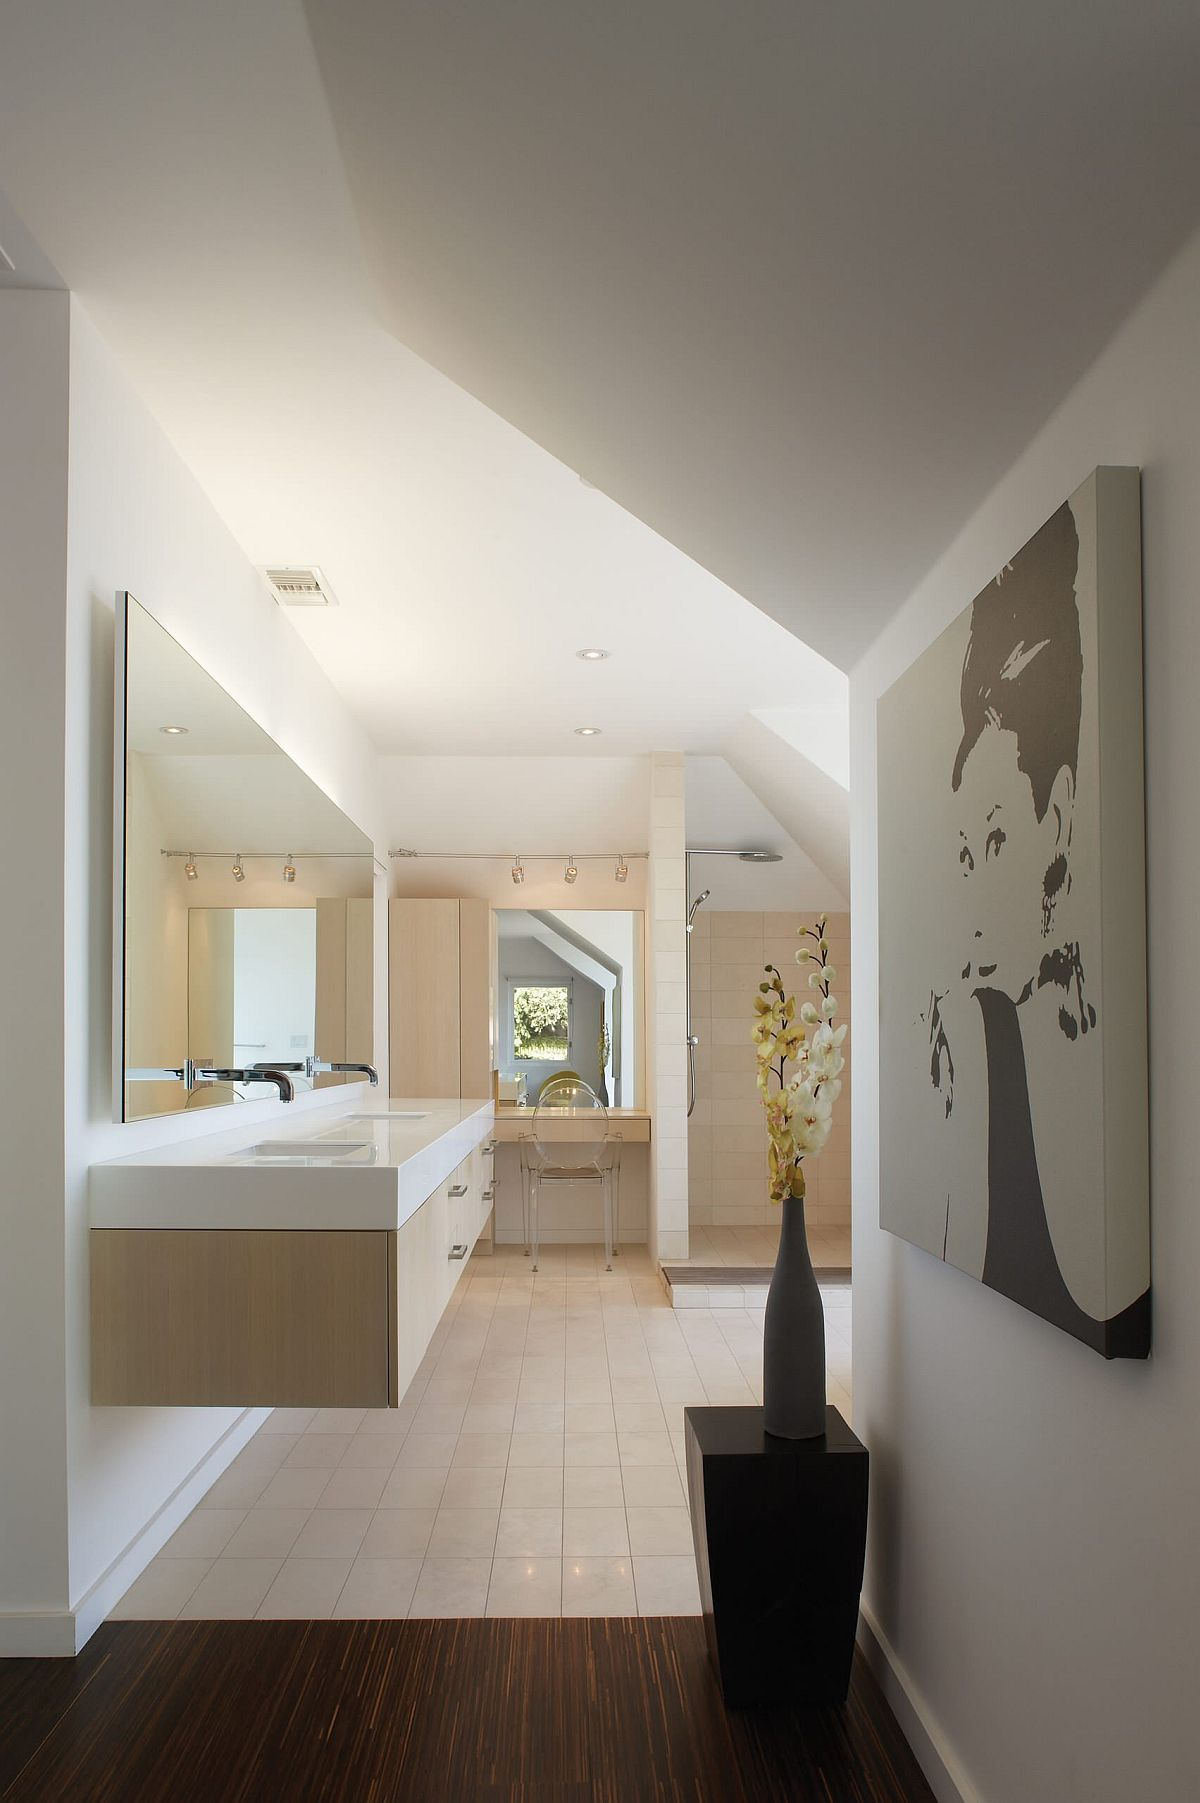 Wall-art-pice-with-Audrey-Hepburn-ushers-in-a-touch-of-vintage-into-the-contemporary-bathroom-96861